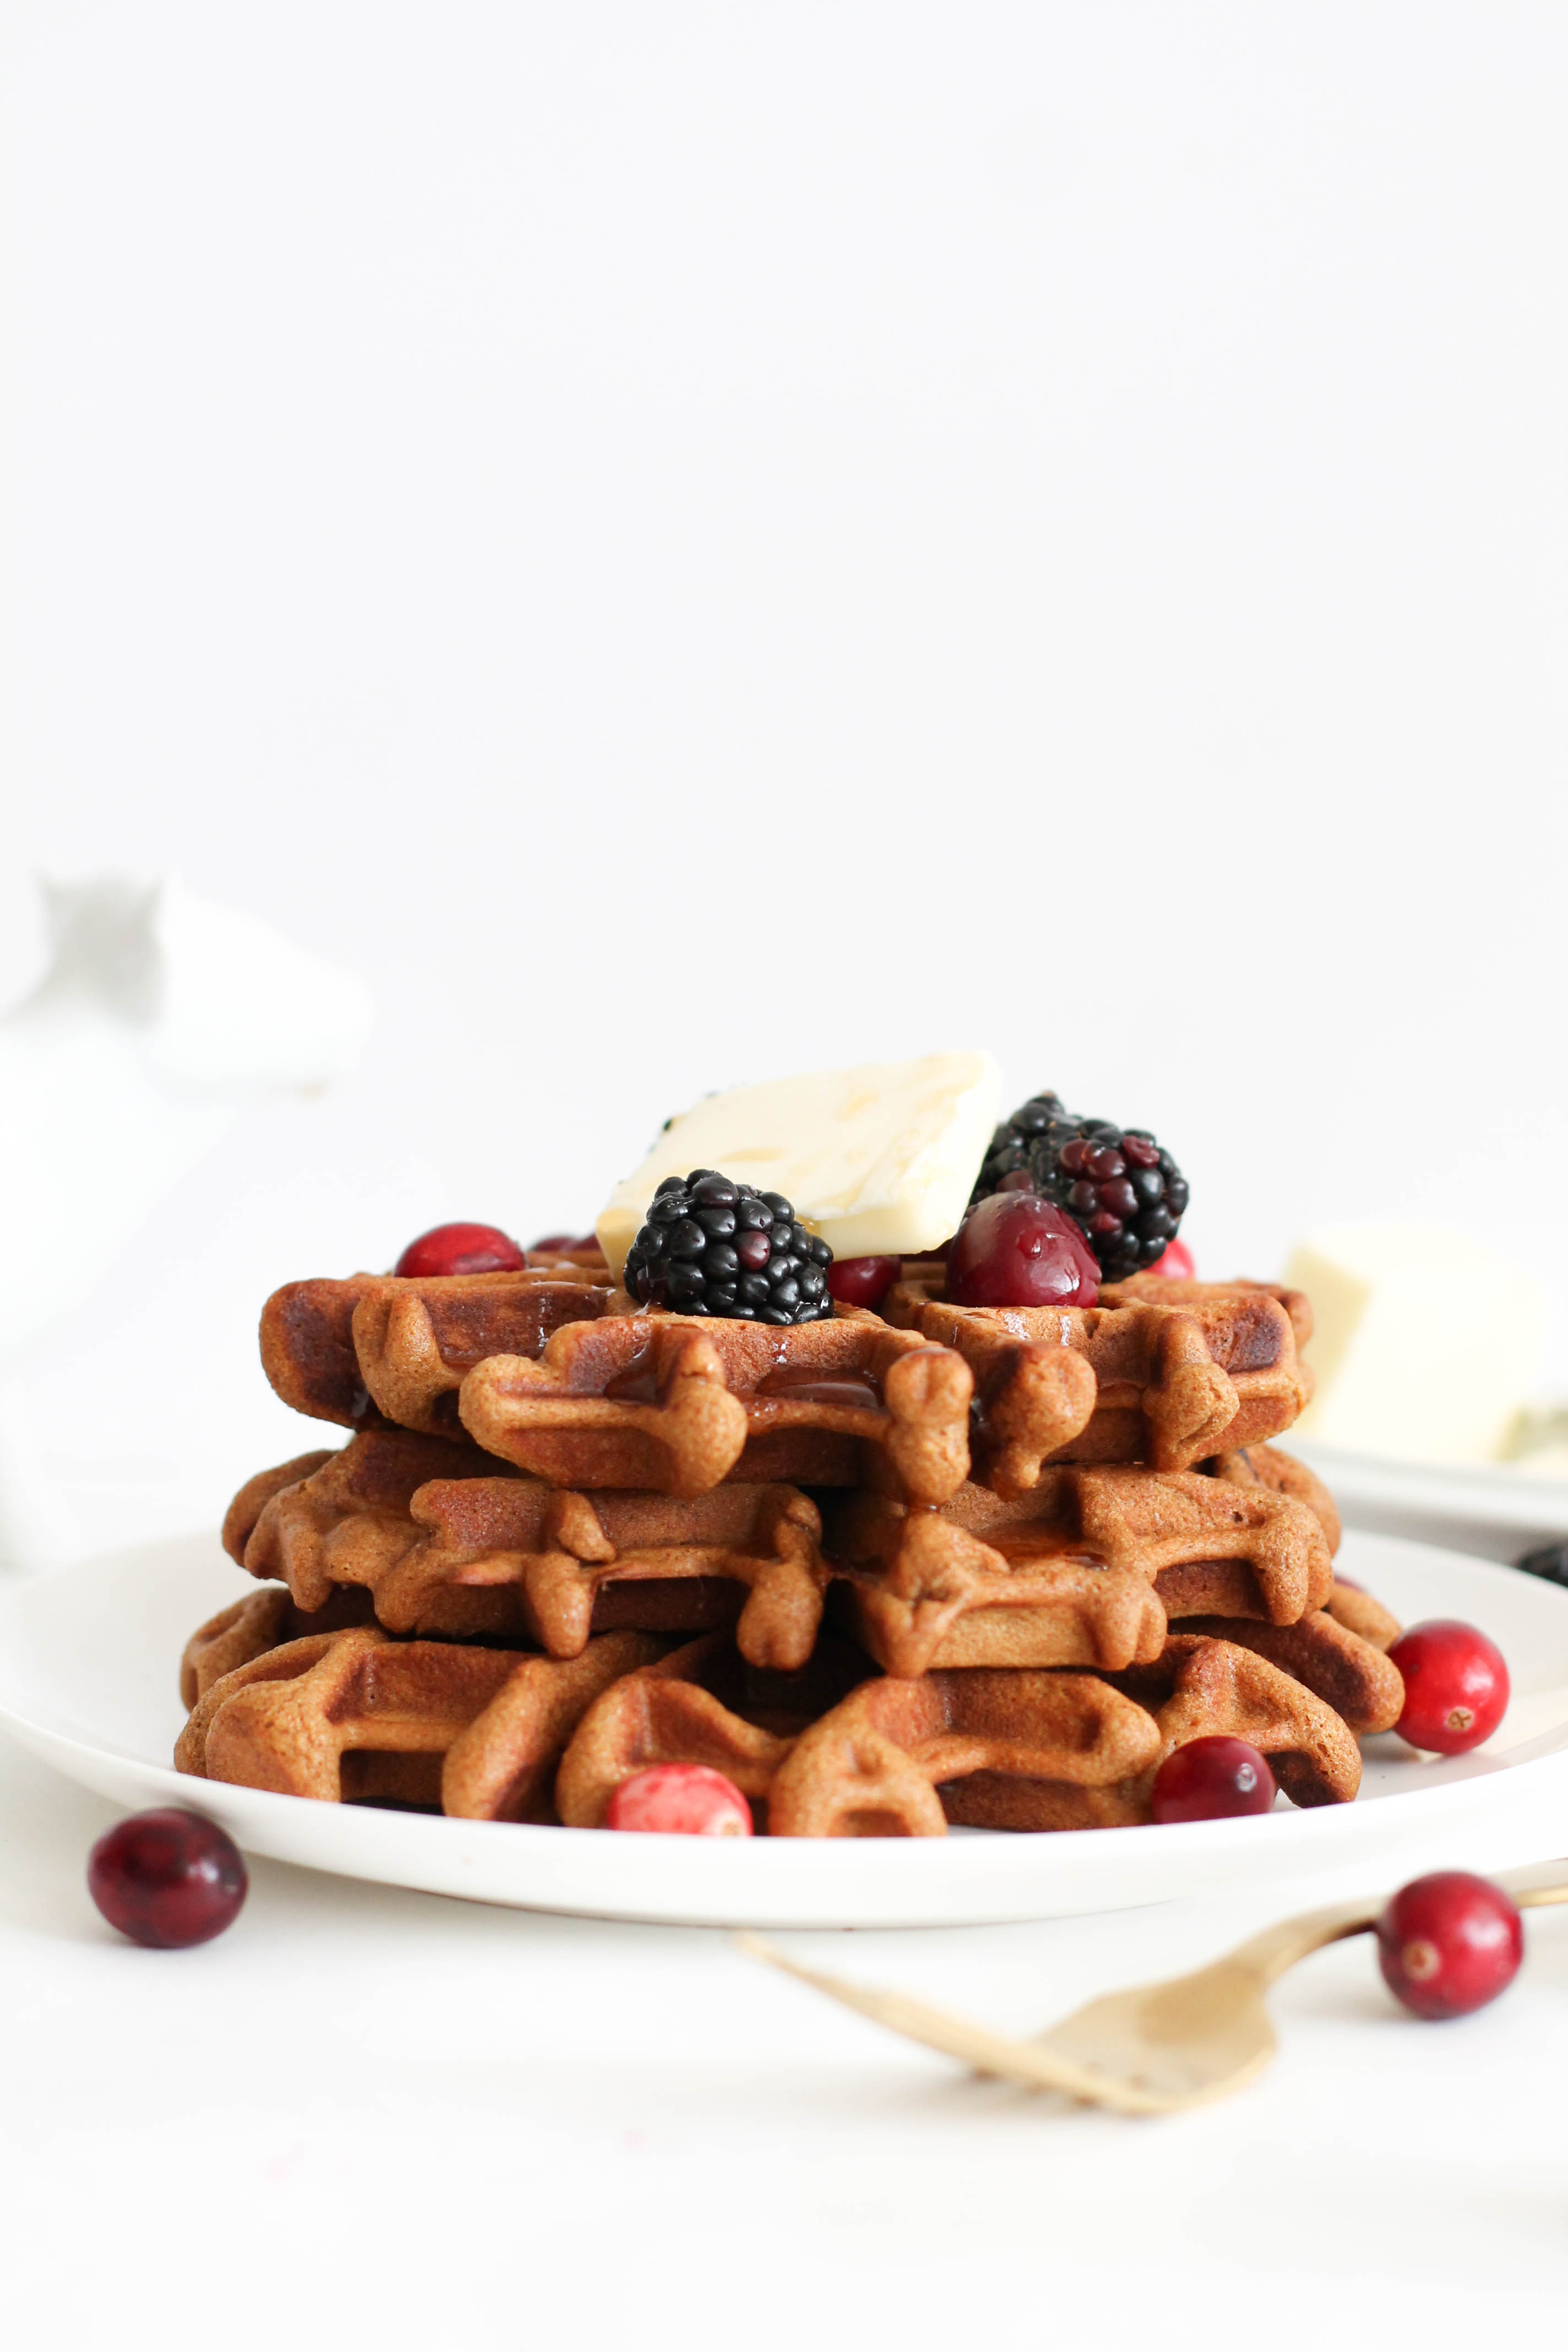 These gingerbread waffles are fluffy, crispy, and full of flavor! They require one bowl, have just six main ingredients, and are the perfect Christmas morning breakfast. Serve them with maple syrup and fresh cranberries for a delicious treat.